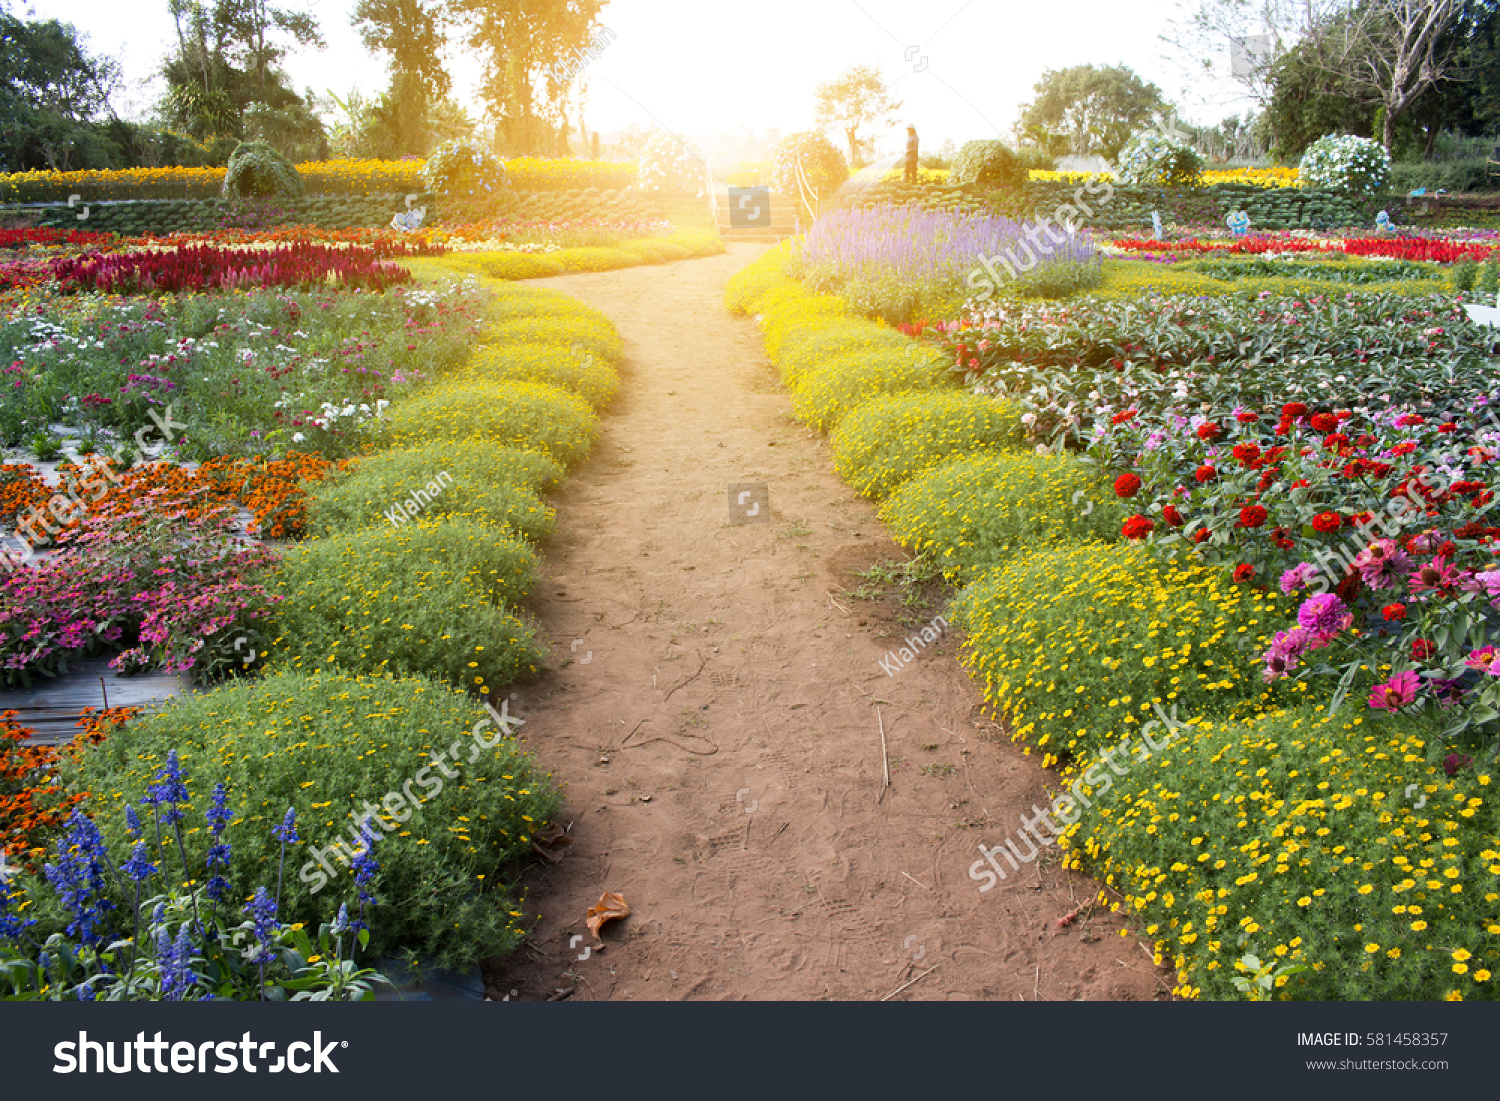 Landscape beautiful flower field stock photo royalty free landscape beautiful flower field stock photo royalty free 581458357 shutterstock izmirmasajfo